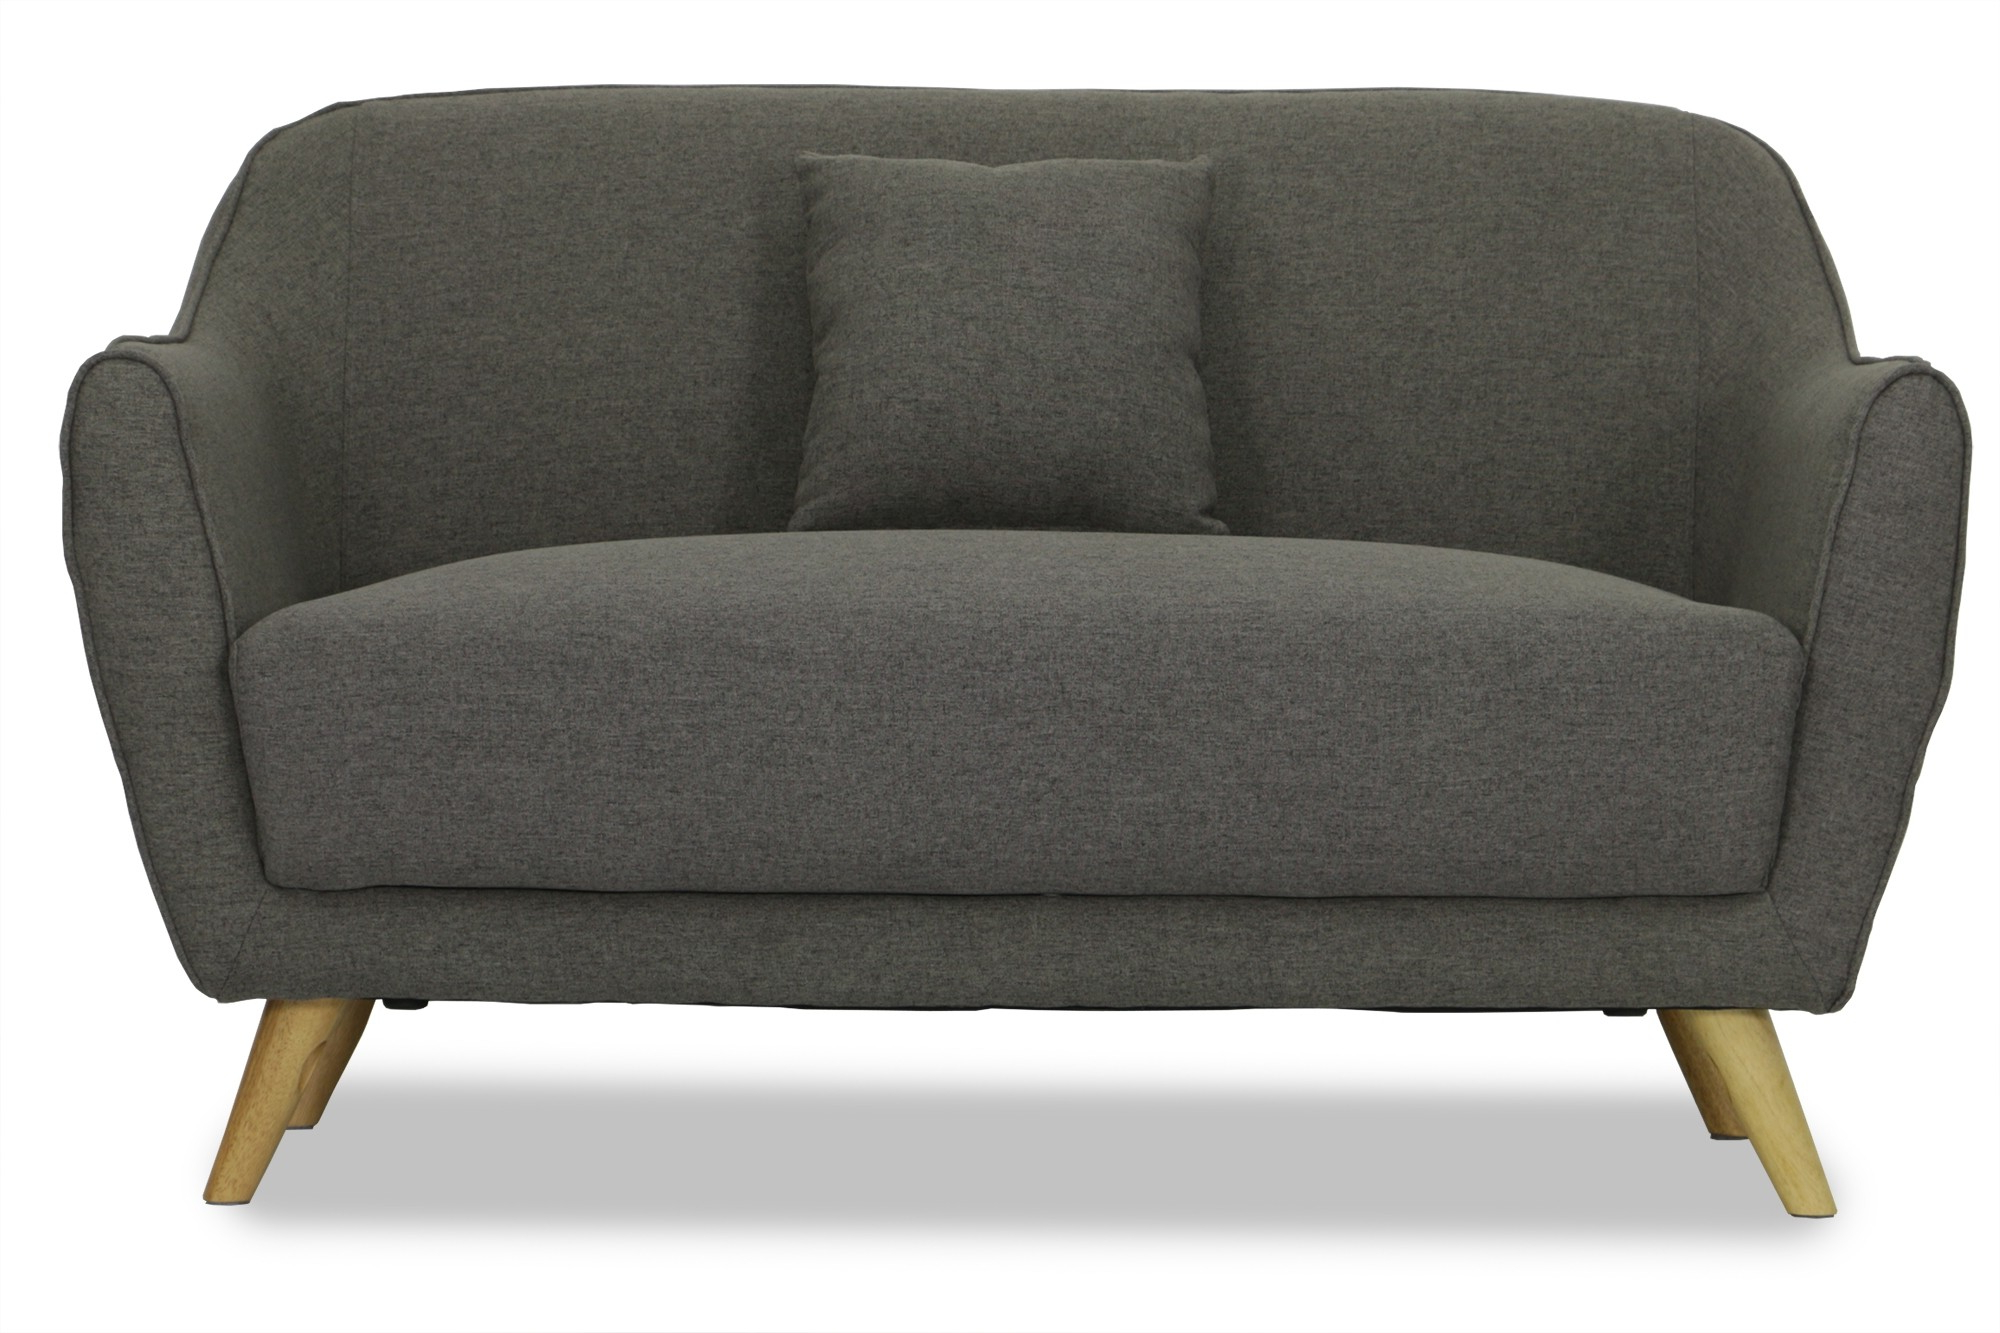 Kokoro Ii 2 Seater Sofa (View 19 of 20)